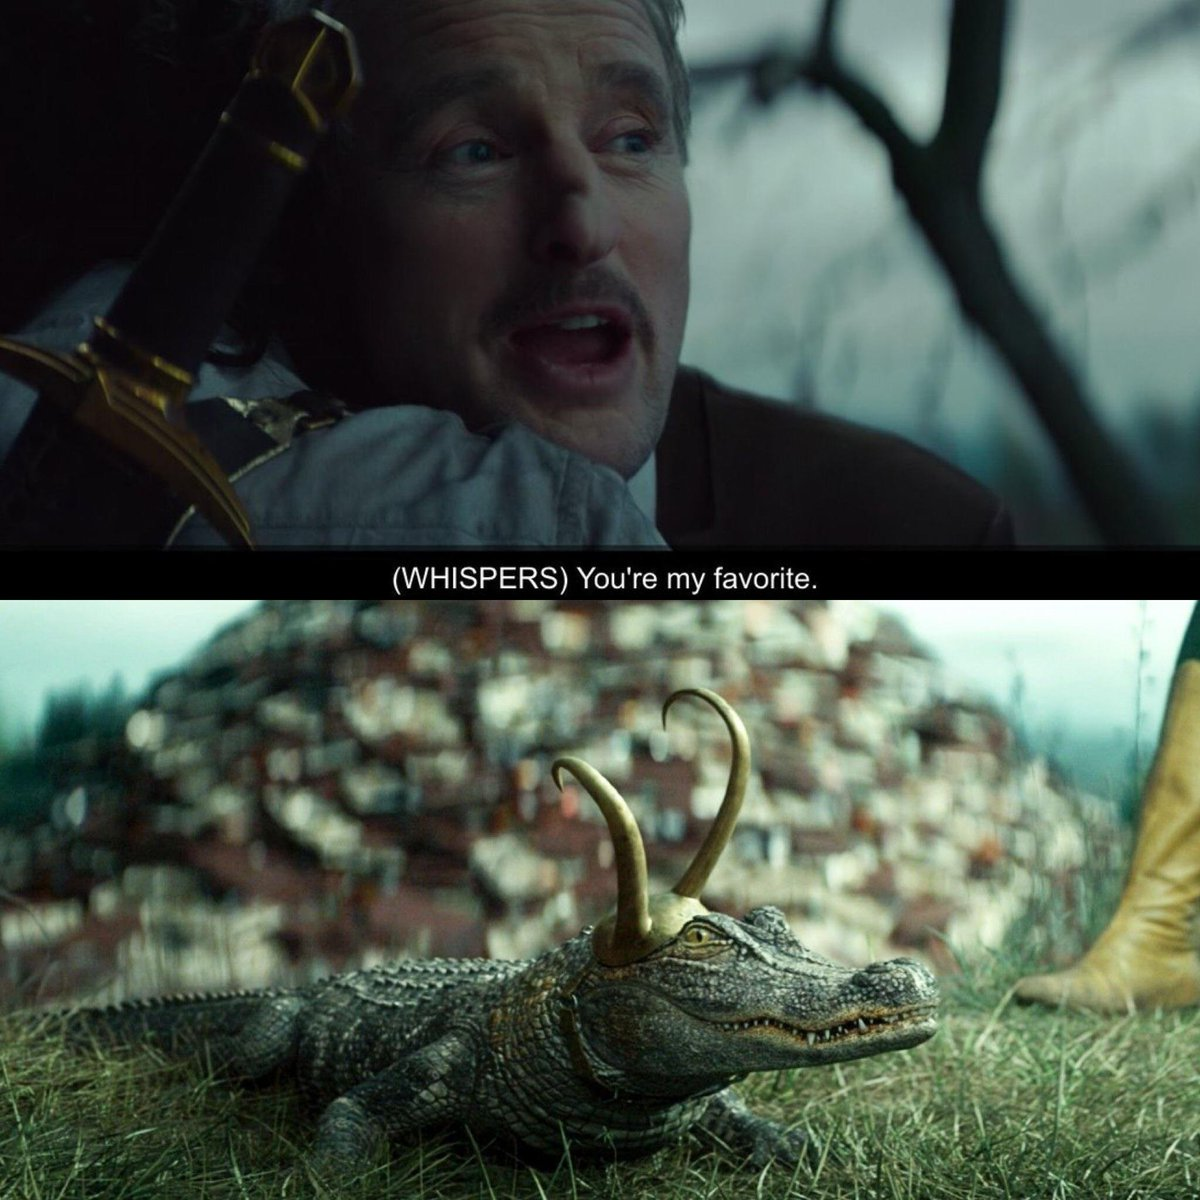 Same, Moby. Same.  So finally started Loki and I couldn't keep my eyes off Lokigator. Freaking adorable. https://t.co/IbAXbP9oc9